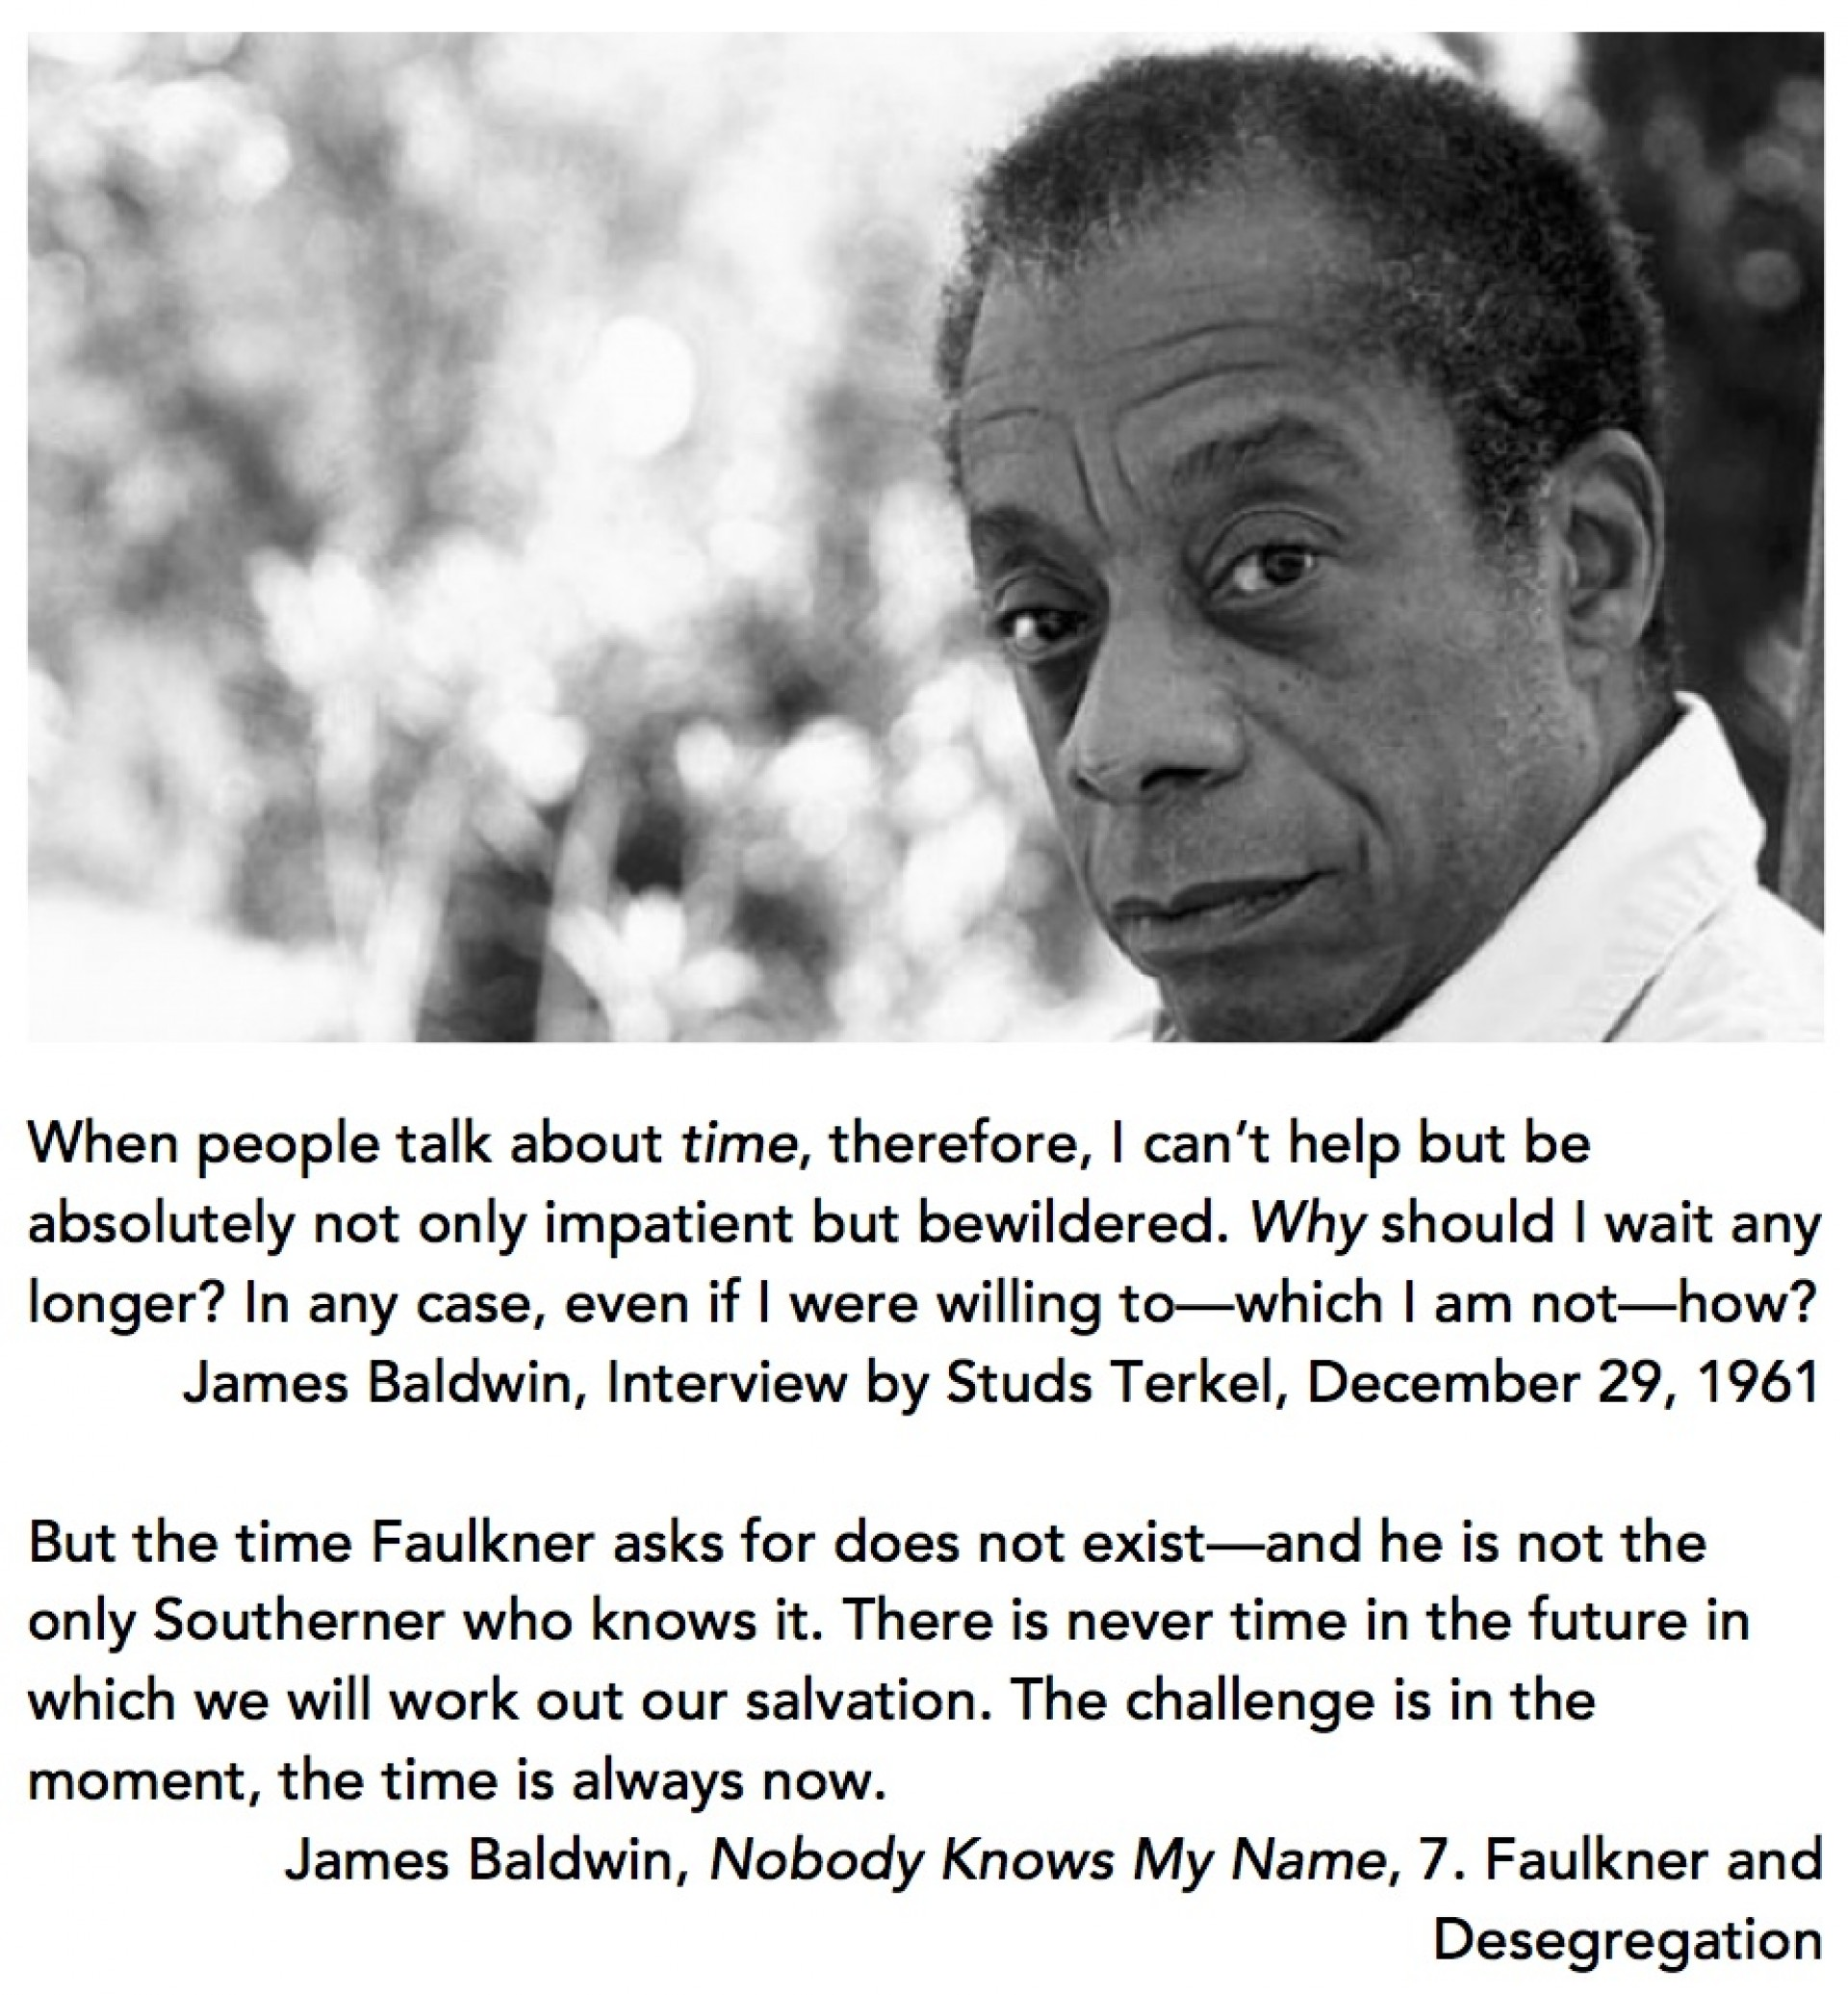 009 The Time Is Always Now James Baldwin Collected Essays Essay Wondrous Table Of Contents Ebook Google Books 1920